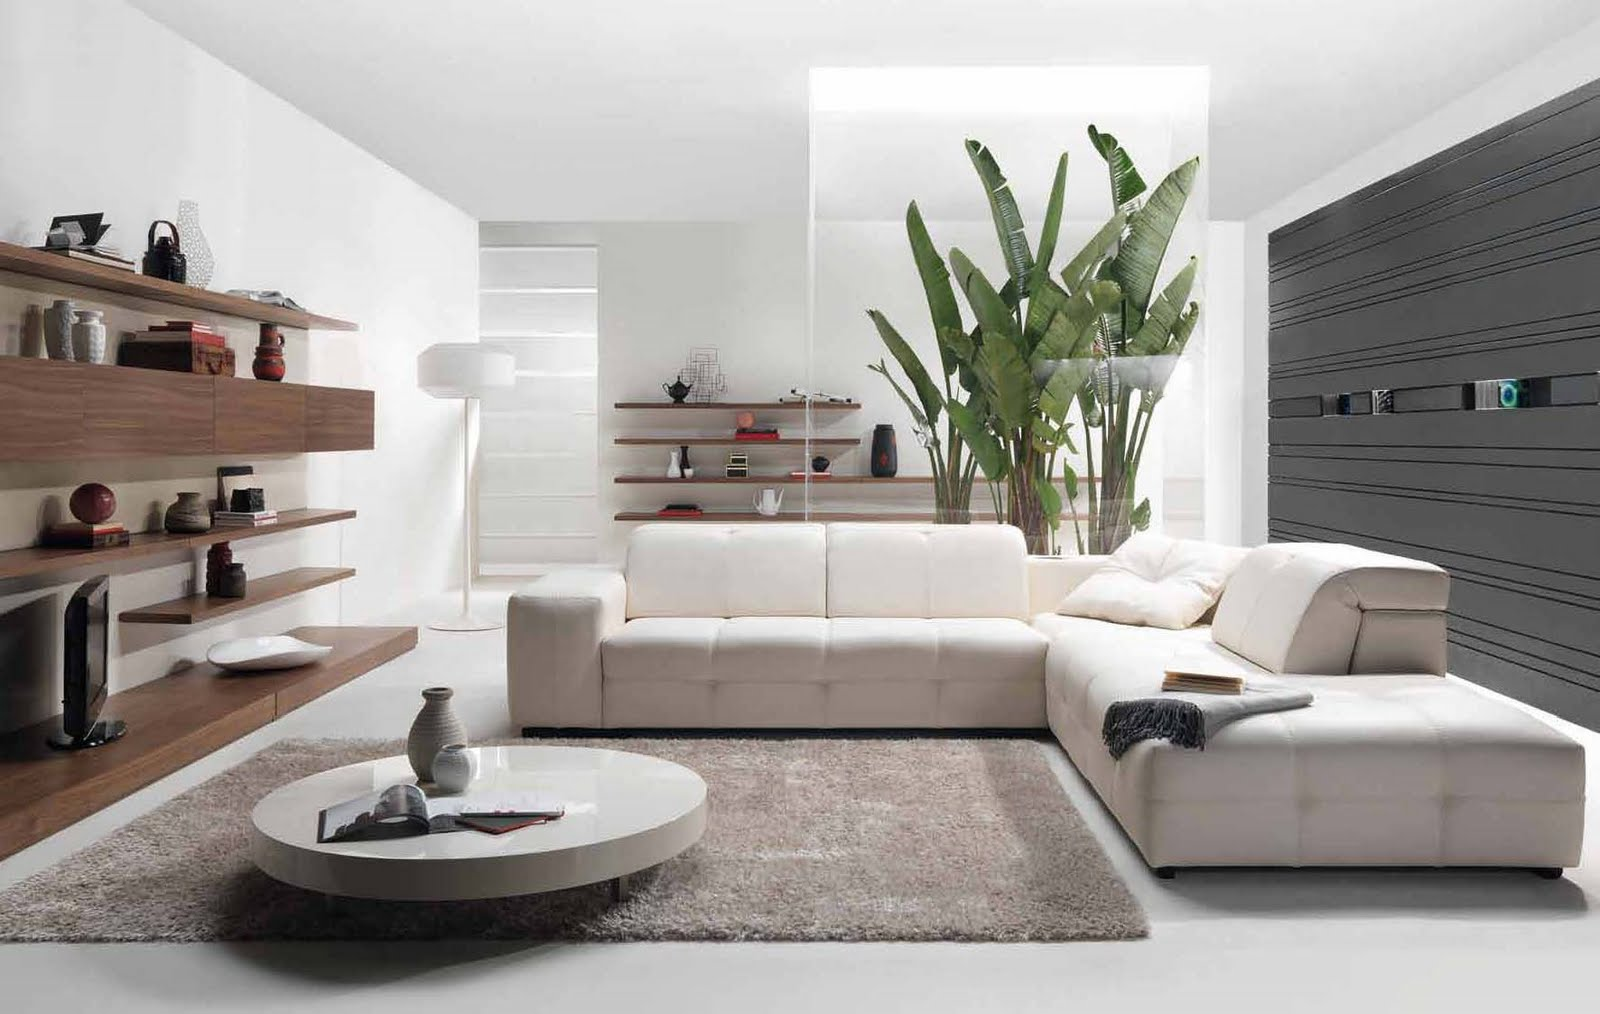 Future house design modern living room interior design for Interior designs in home